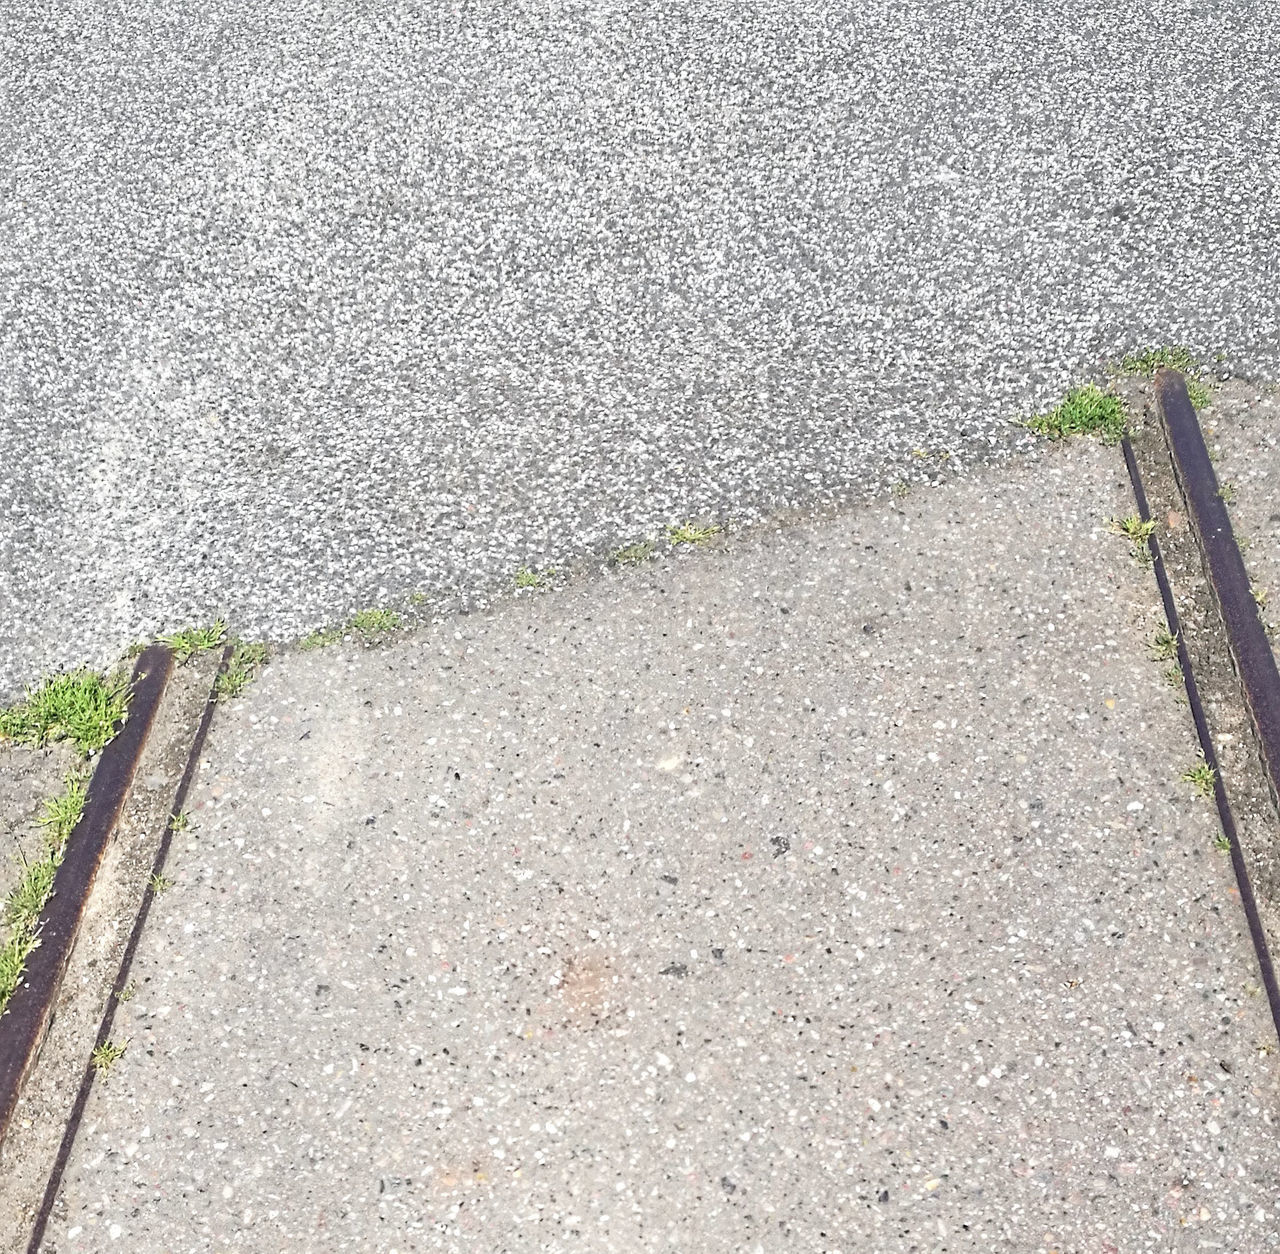 Asphalt Close-up Day End Of Rail Track High Angle View No People Outdoors Road Street